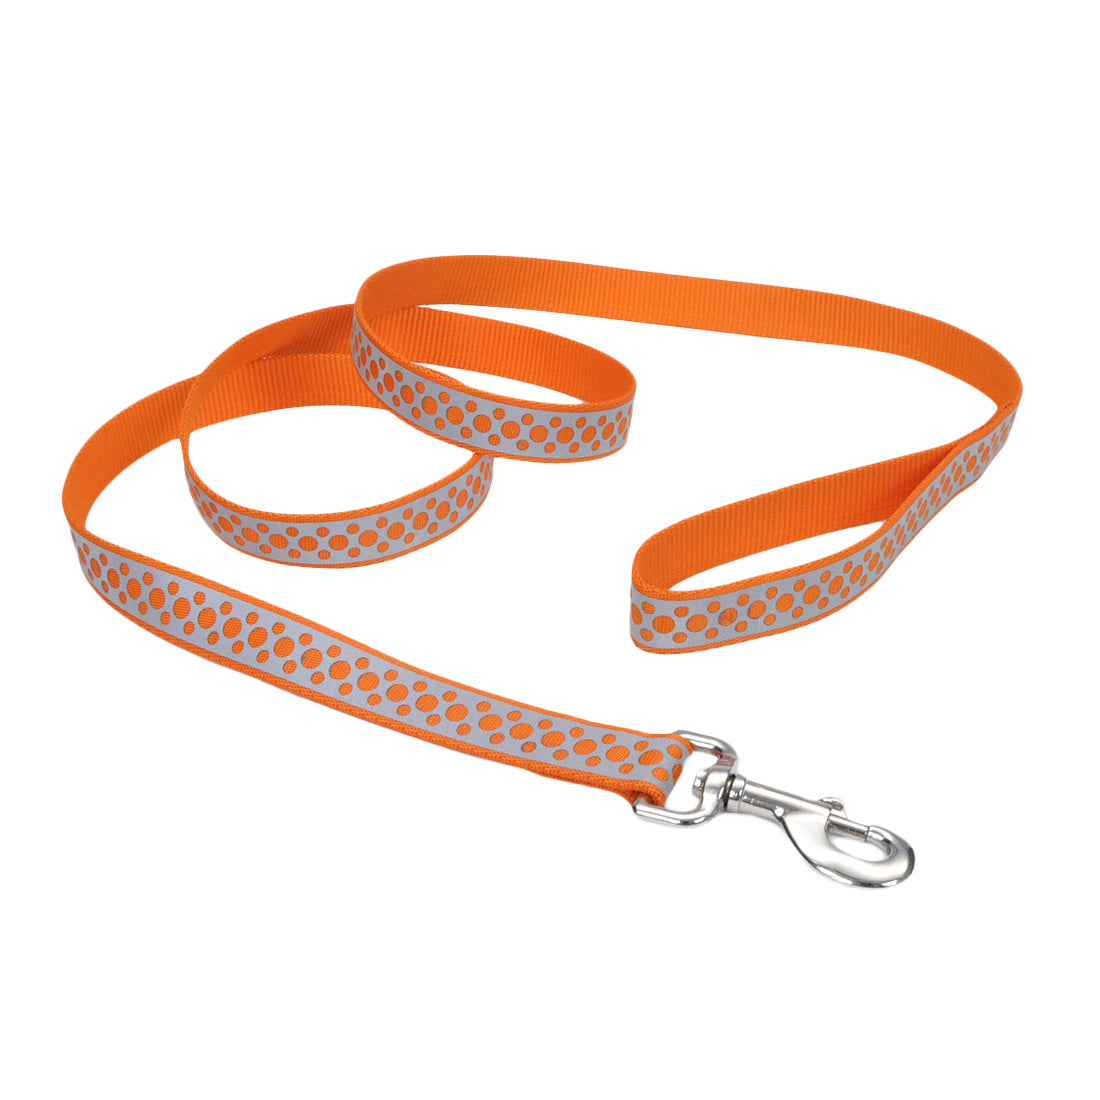 "Coastal Lazer Bright Reflective Leash 6' - 1"" Orange Abstract Rings"